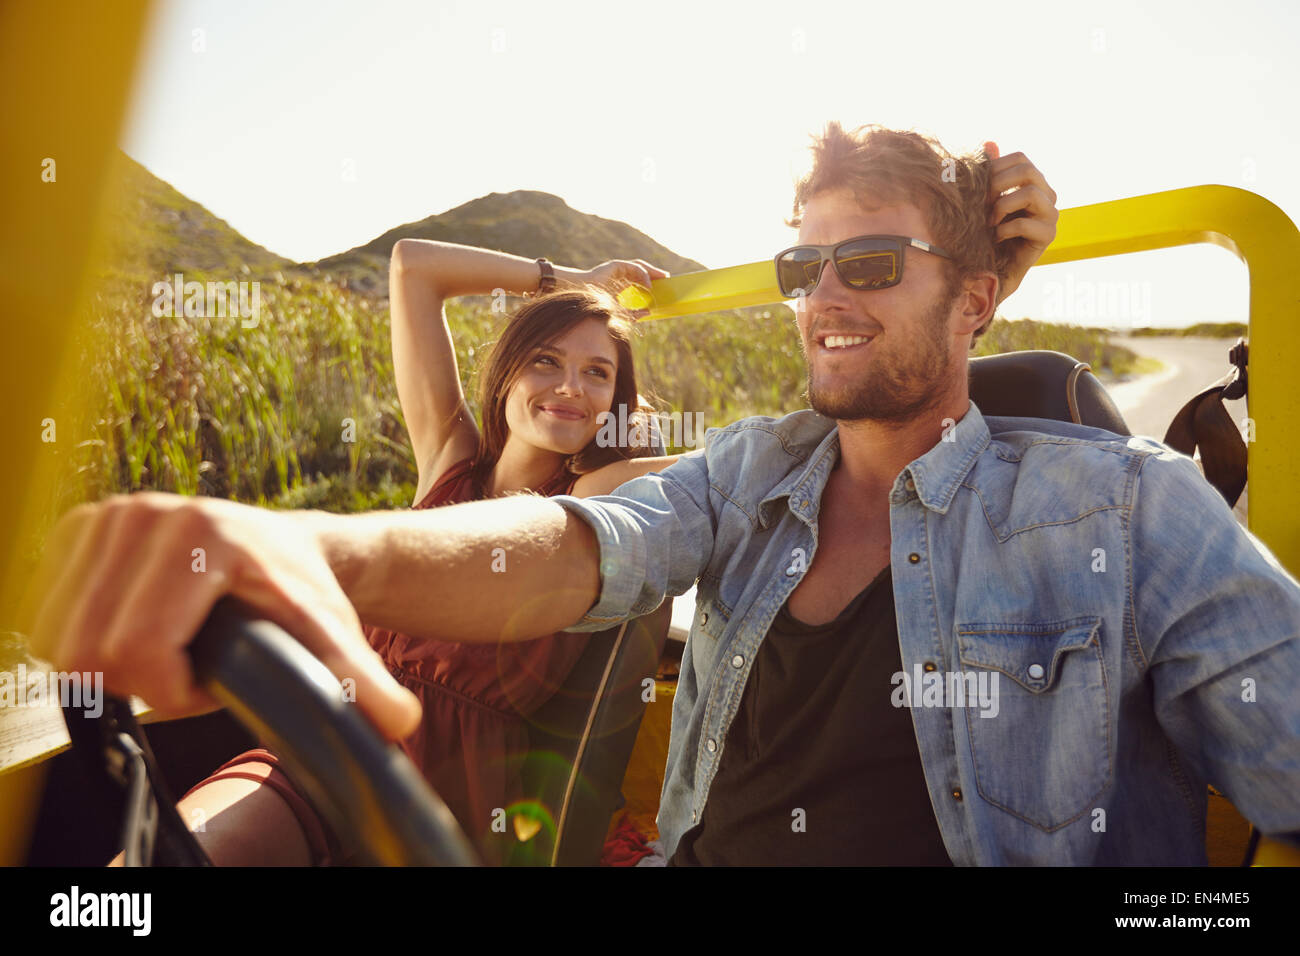 Woman looking at man driving car on a summer day. Loving young couple on road trip. - Stock Image